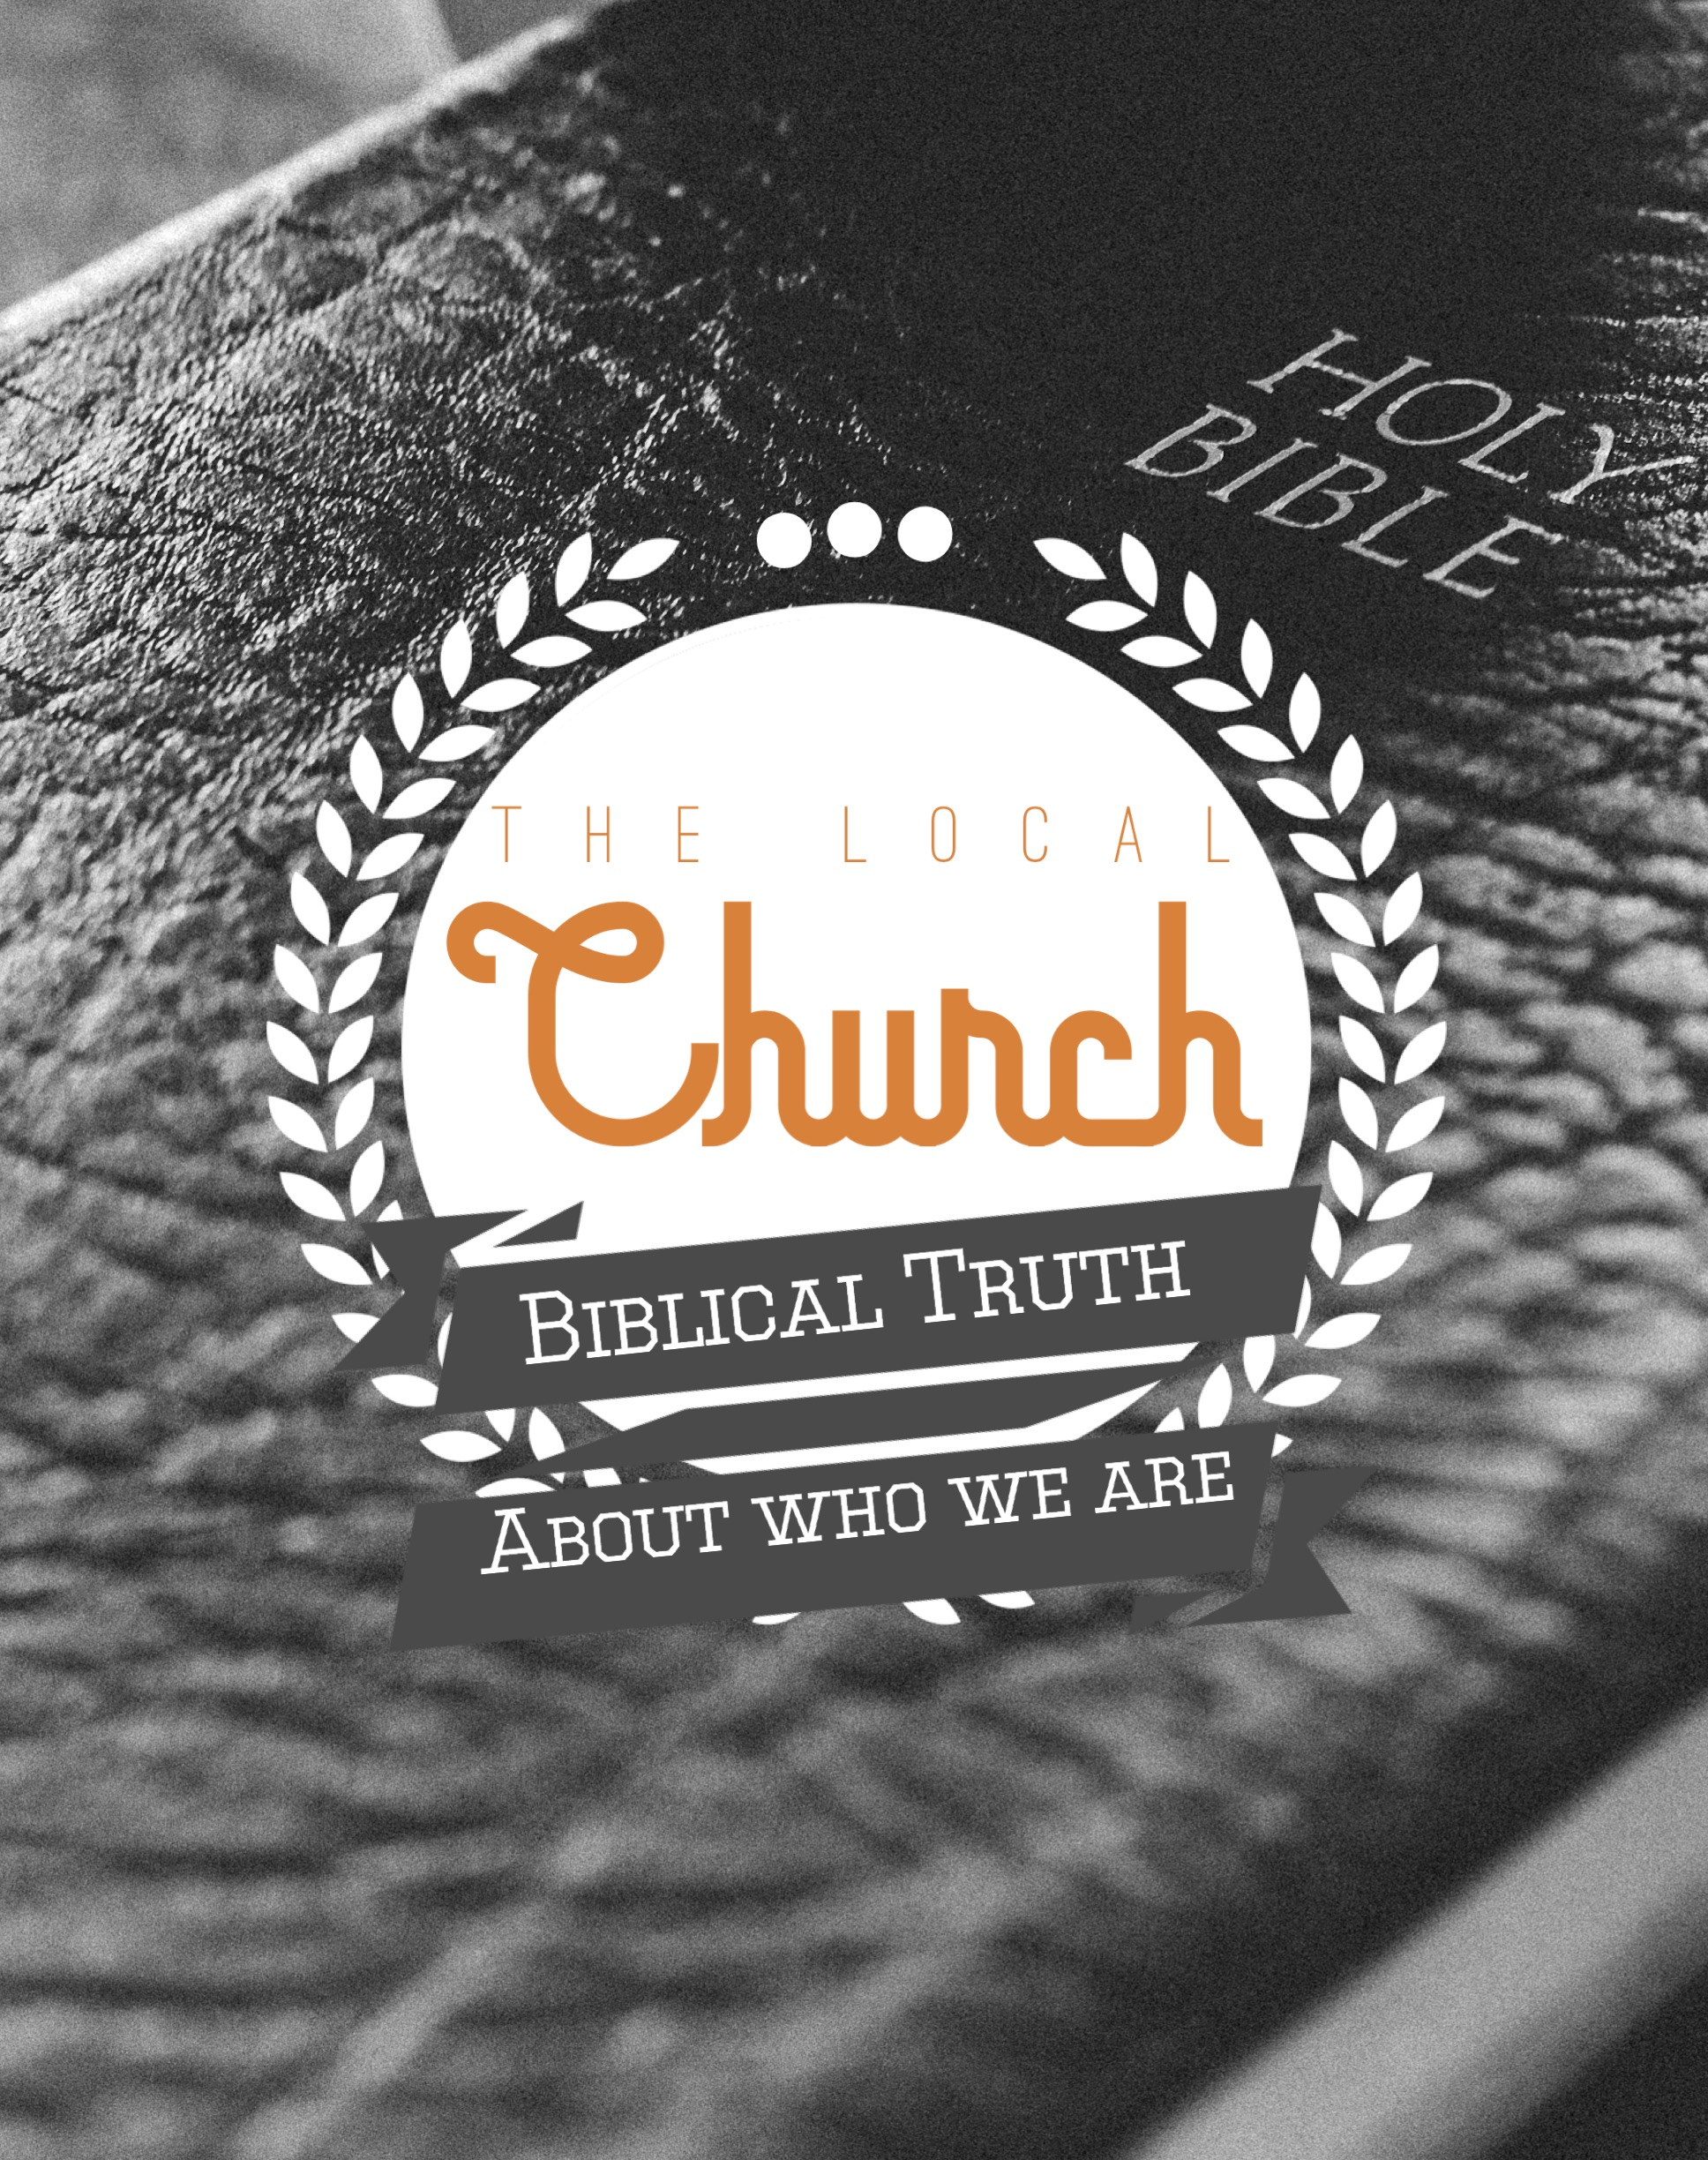 The Local Church - Biblical Truth About Who We Are